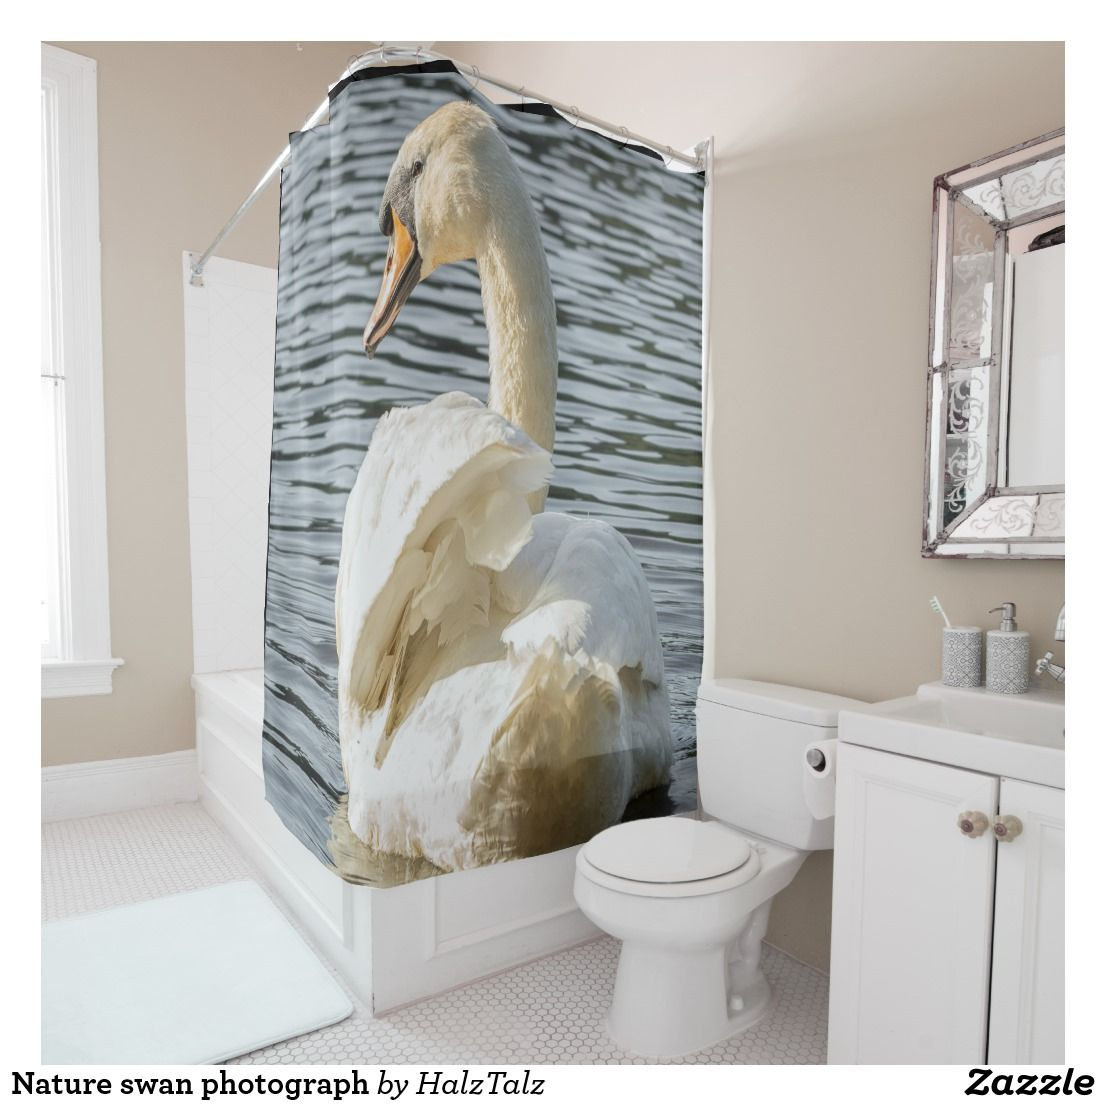 Nature Swan Photograph Shower Curtain Zazzle Co Uk Shower Curtains Bathroom Accessories